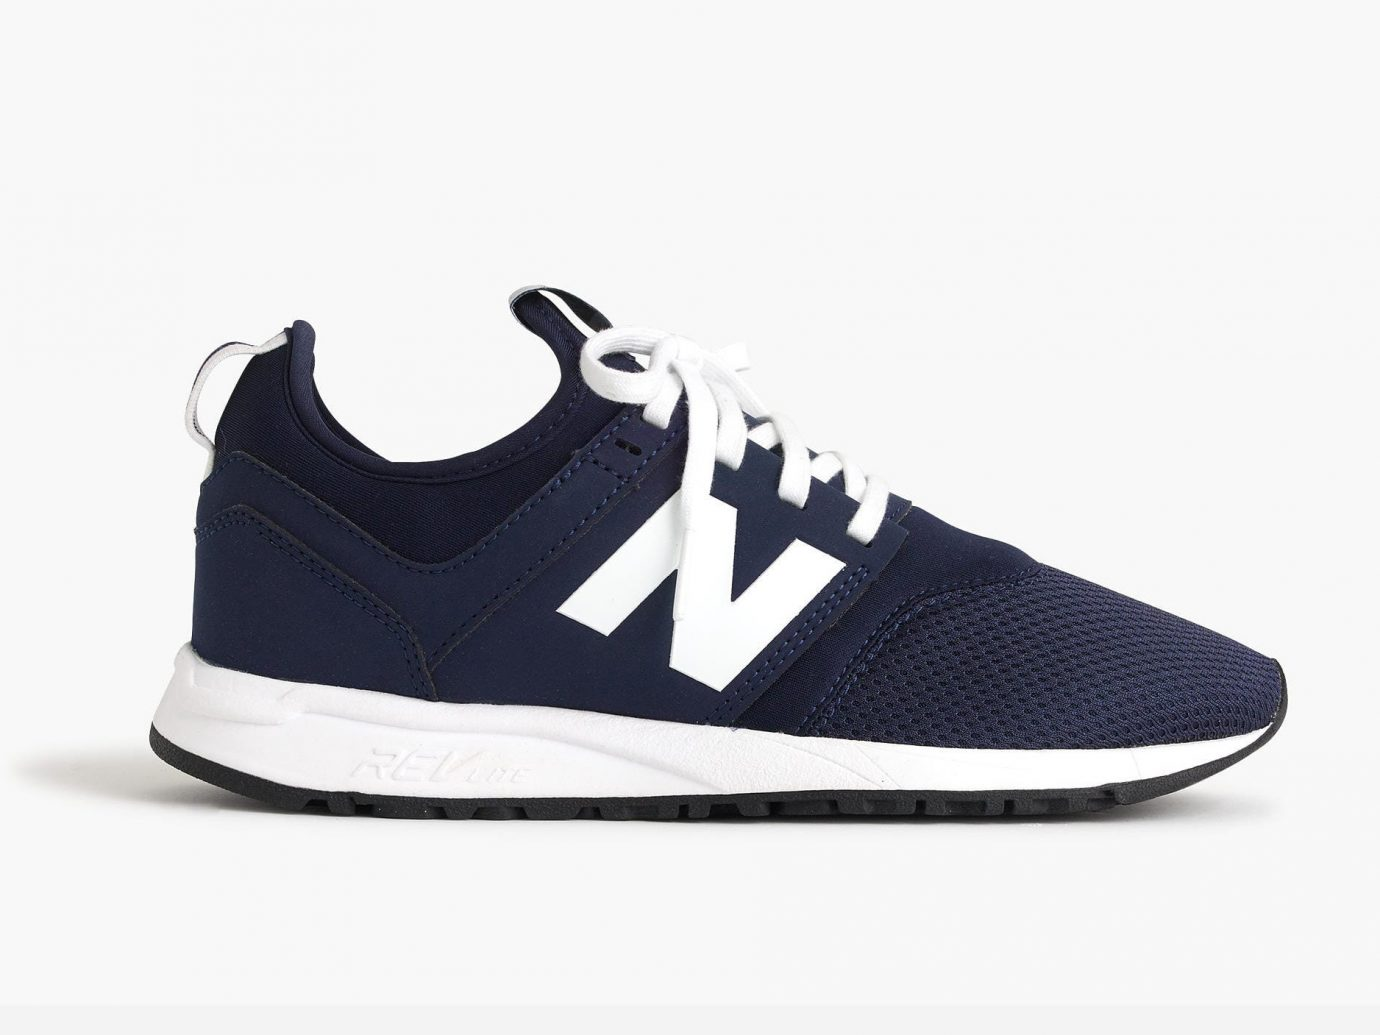 551d4c0b3c New Balance for J.Crew 247 Sneakers